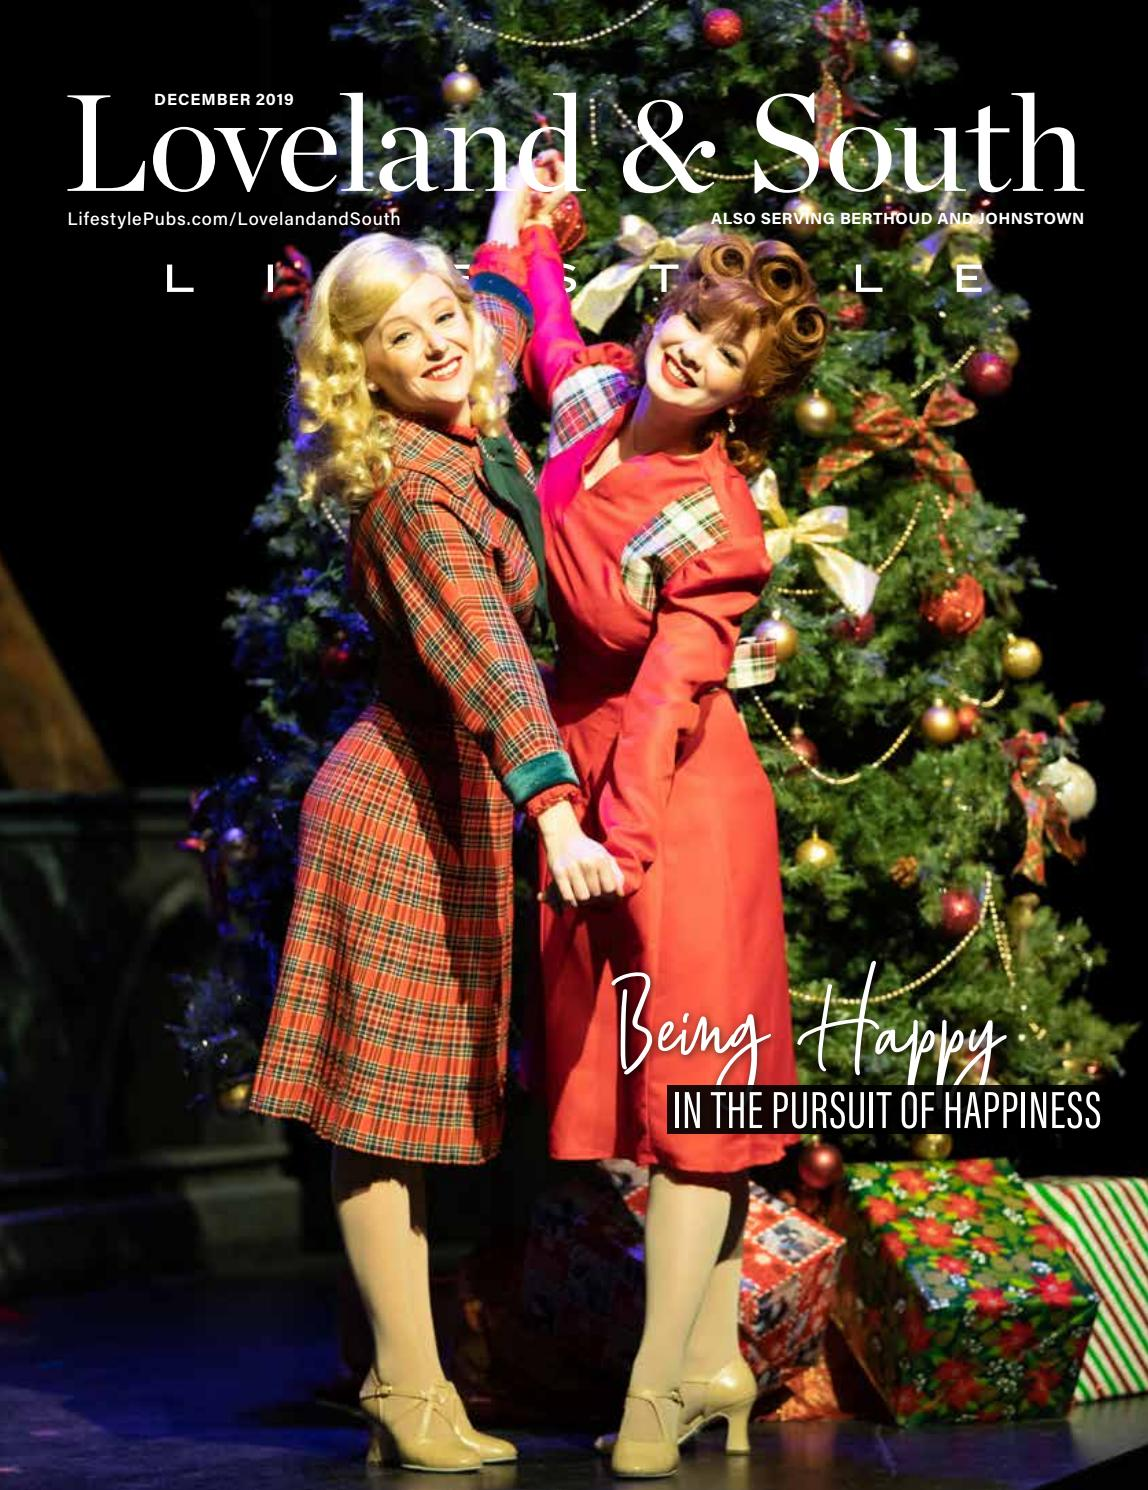 Berthoud Show Choir Christmas Dates 2020 Loveland & South, CO December 2019 by Lifestyle Publications   issuu